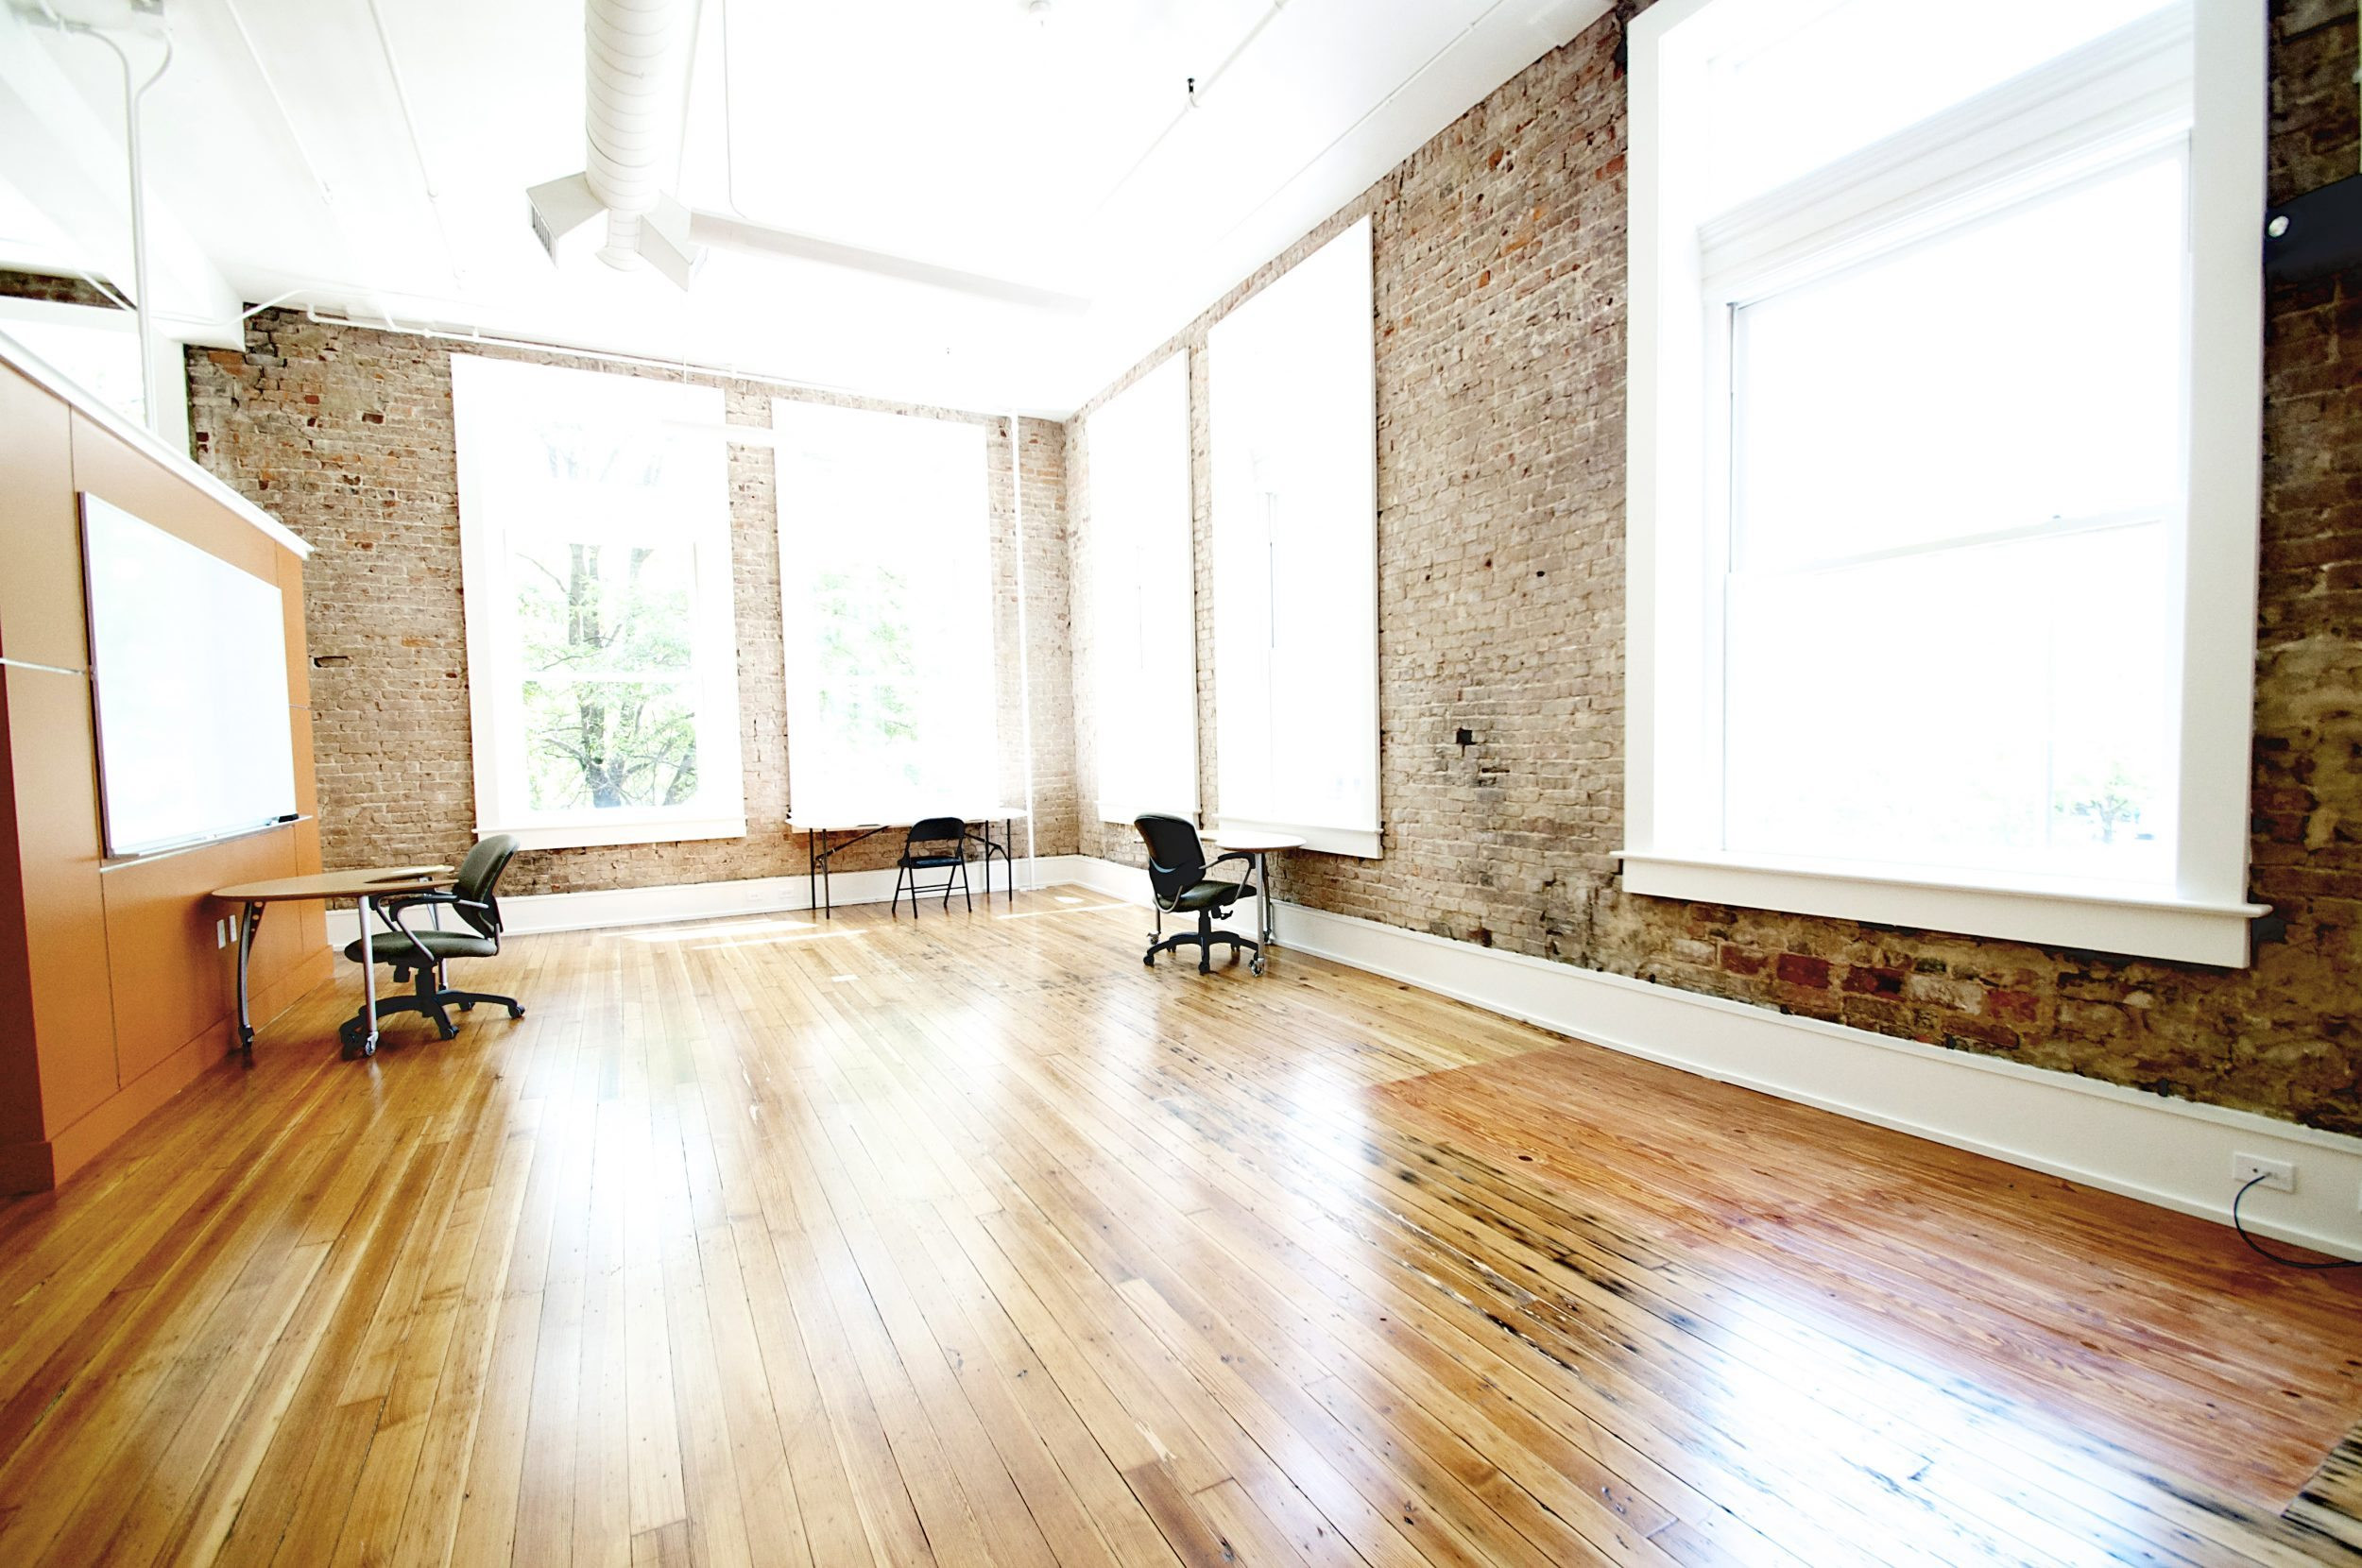 hardwood flooring chattanooga of lamp post group emj in project photos